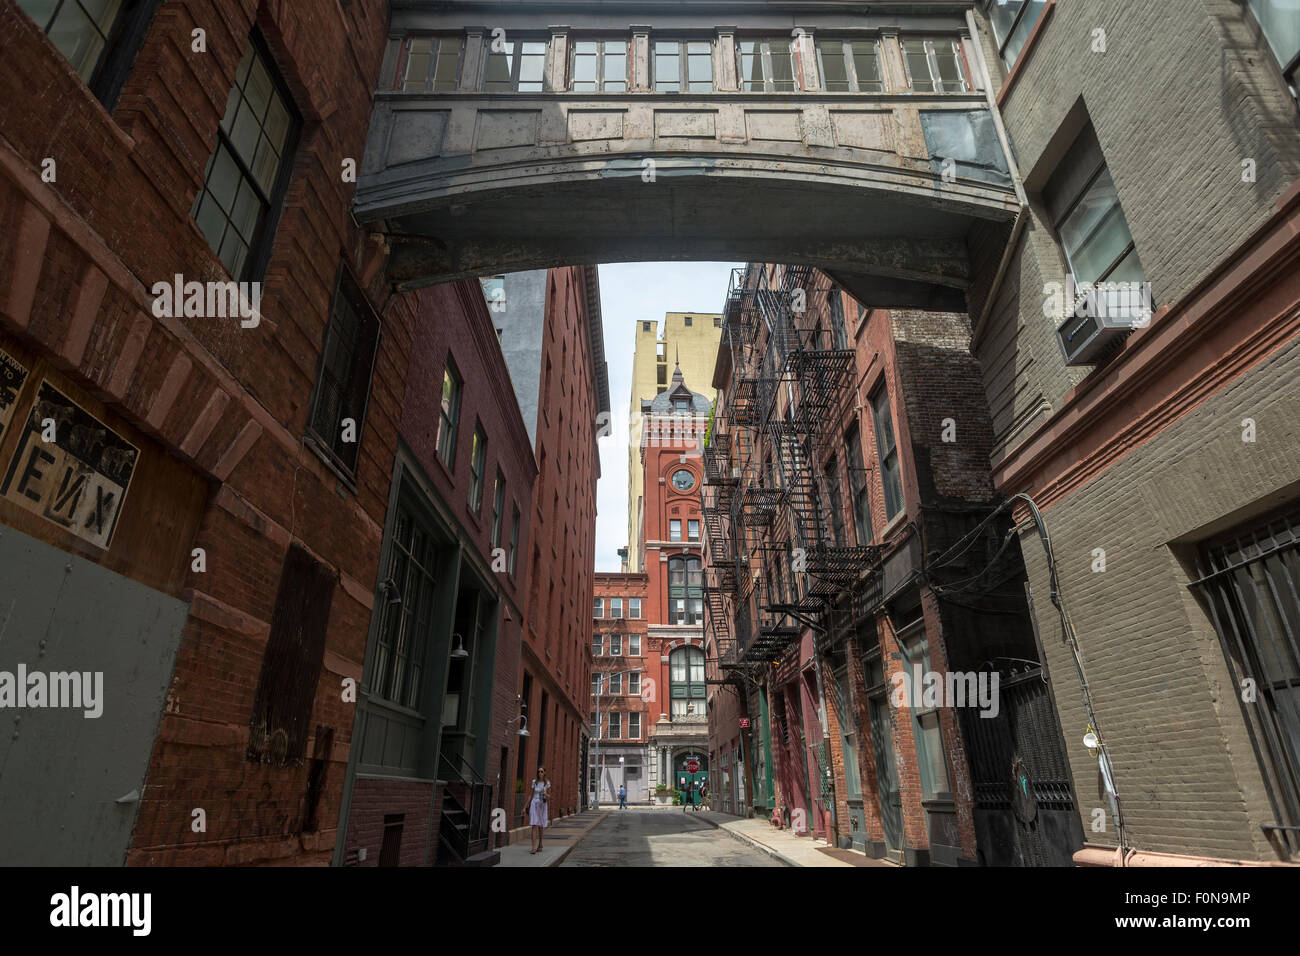 New York, NY - 8. August 2015 - TriBeCa Skybridge auf Grundnahrungsmittel Straße Stockbild